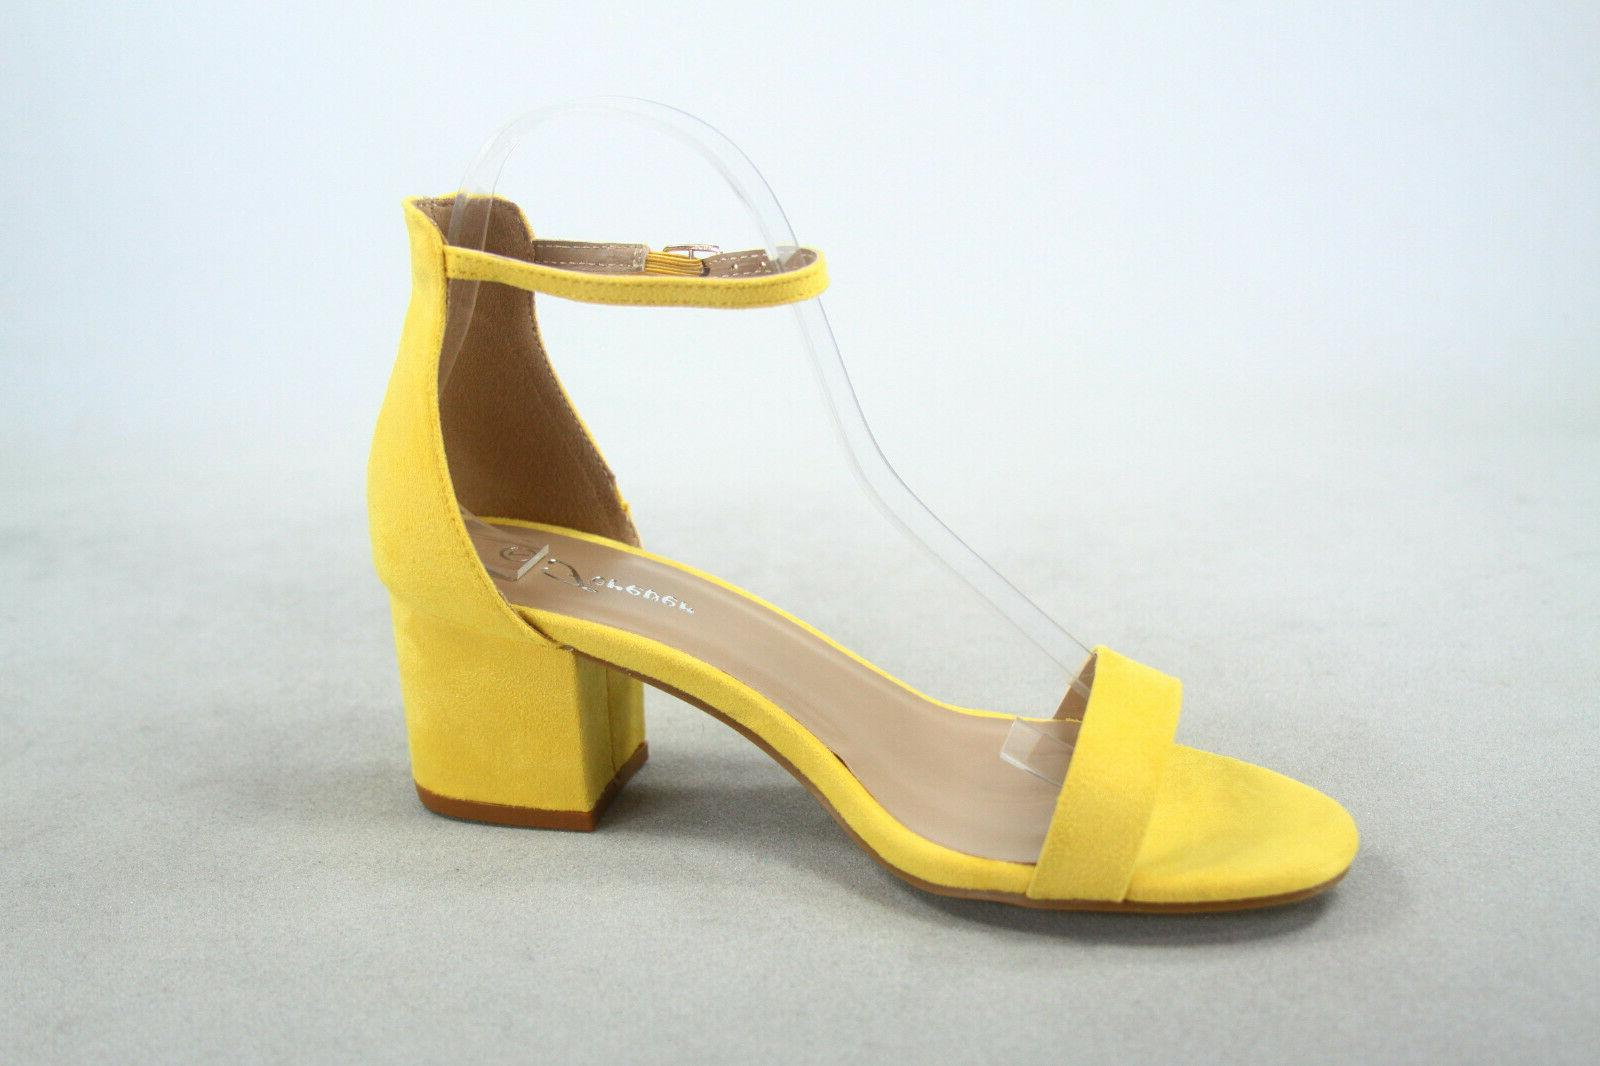 NEW Women's Ankle Chunky Heel Size 5